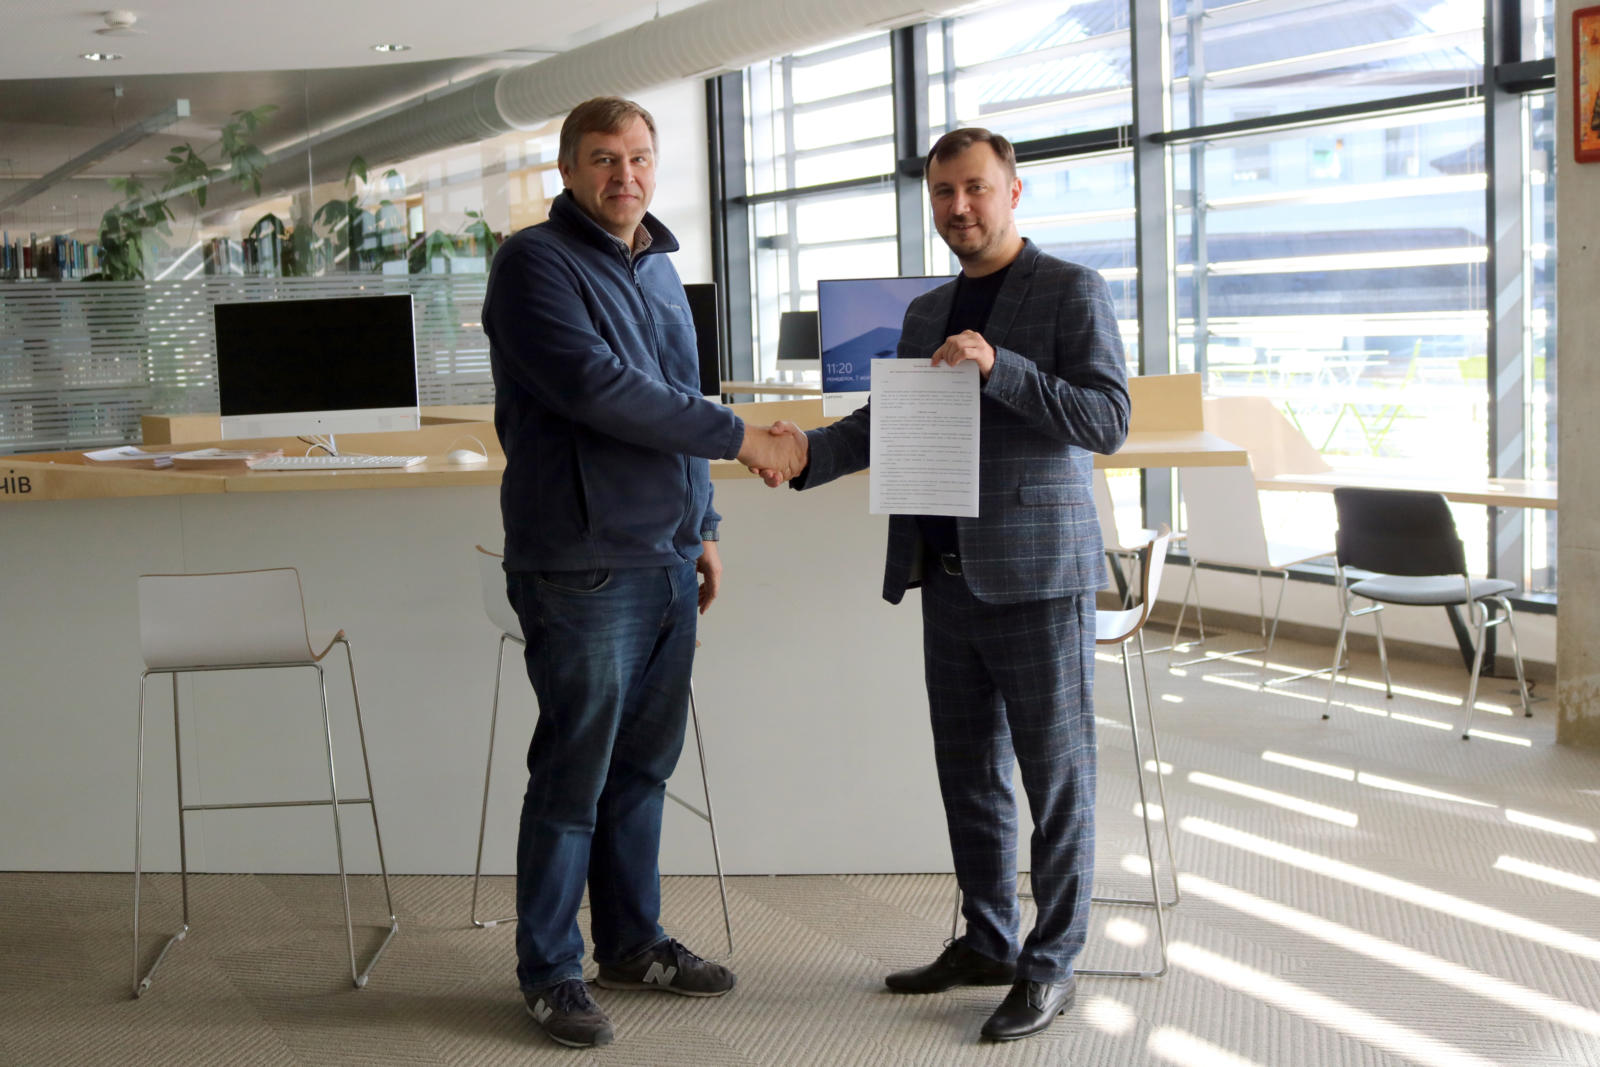 Yaroslav Prytula, Dean of Faculty of Applied Sciences at UCU (to the left), and Ihor Salamin, Human Capital Director at PLVision (to the right), welcome the signing of the collaboration agreement between their organizations.